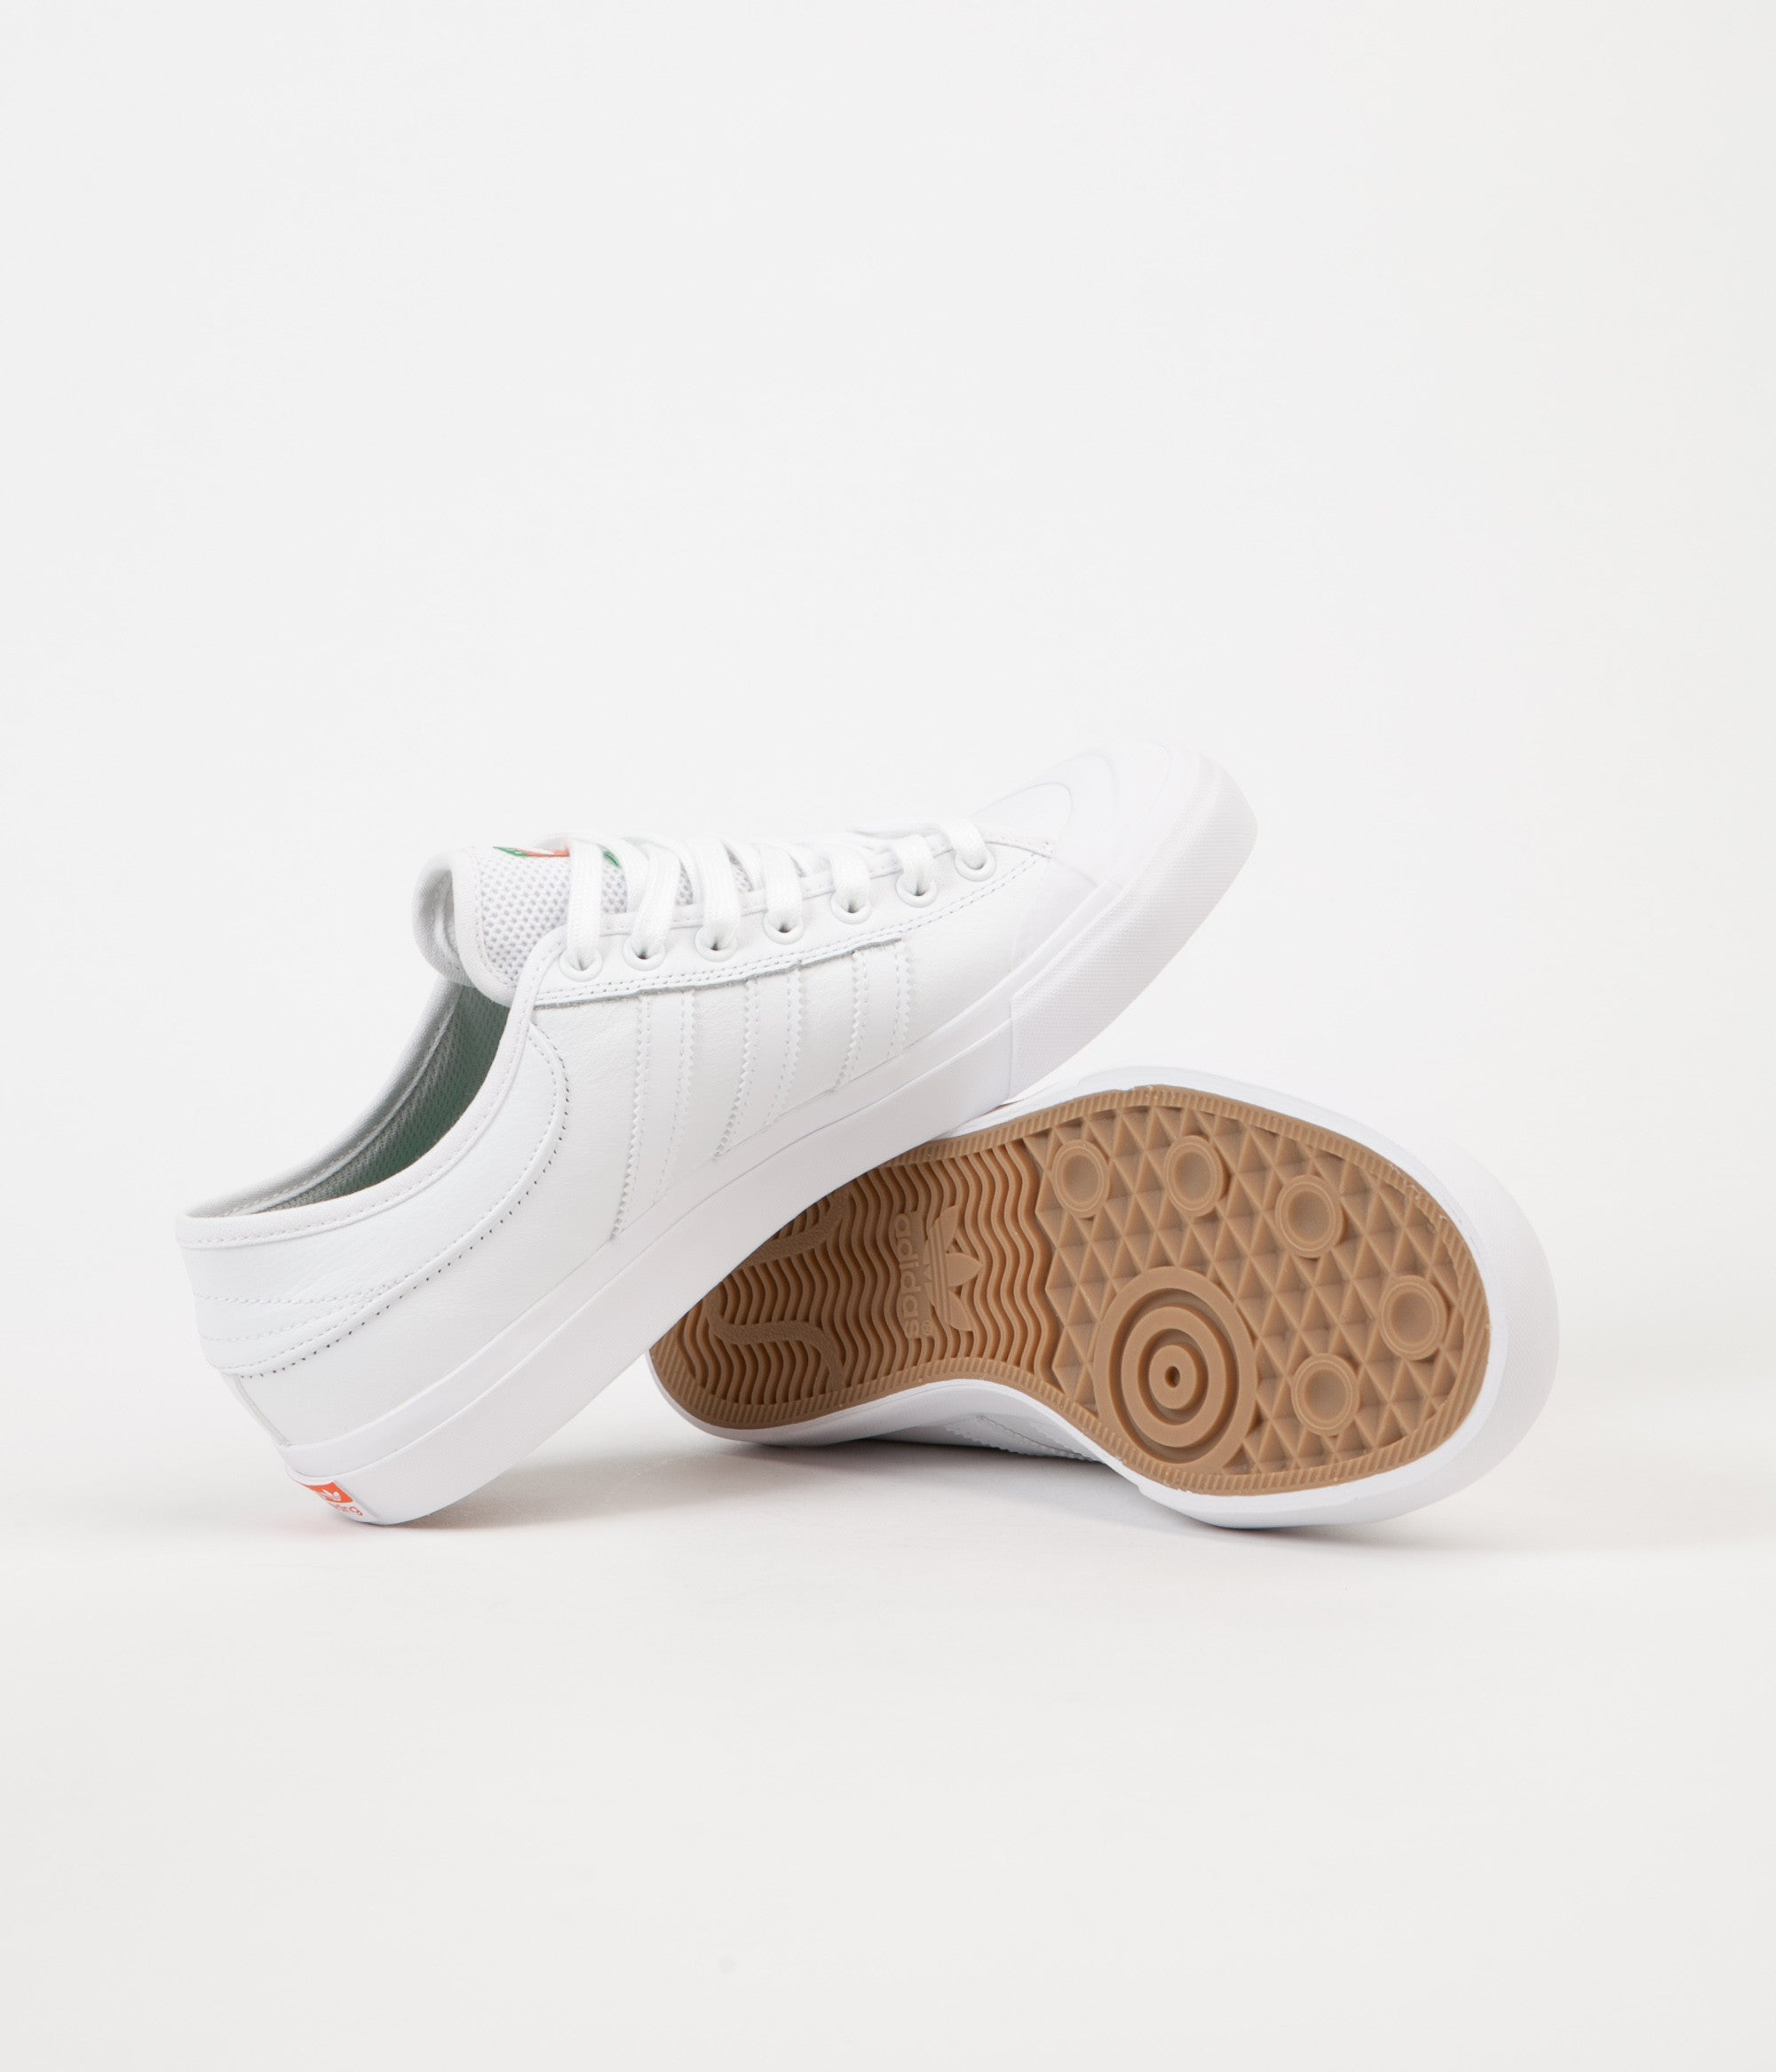 Adidas x Helas Matchcourt Shoes - White